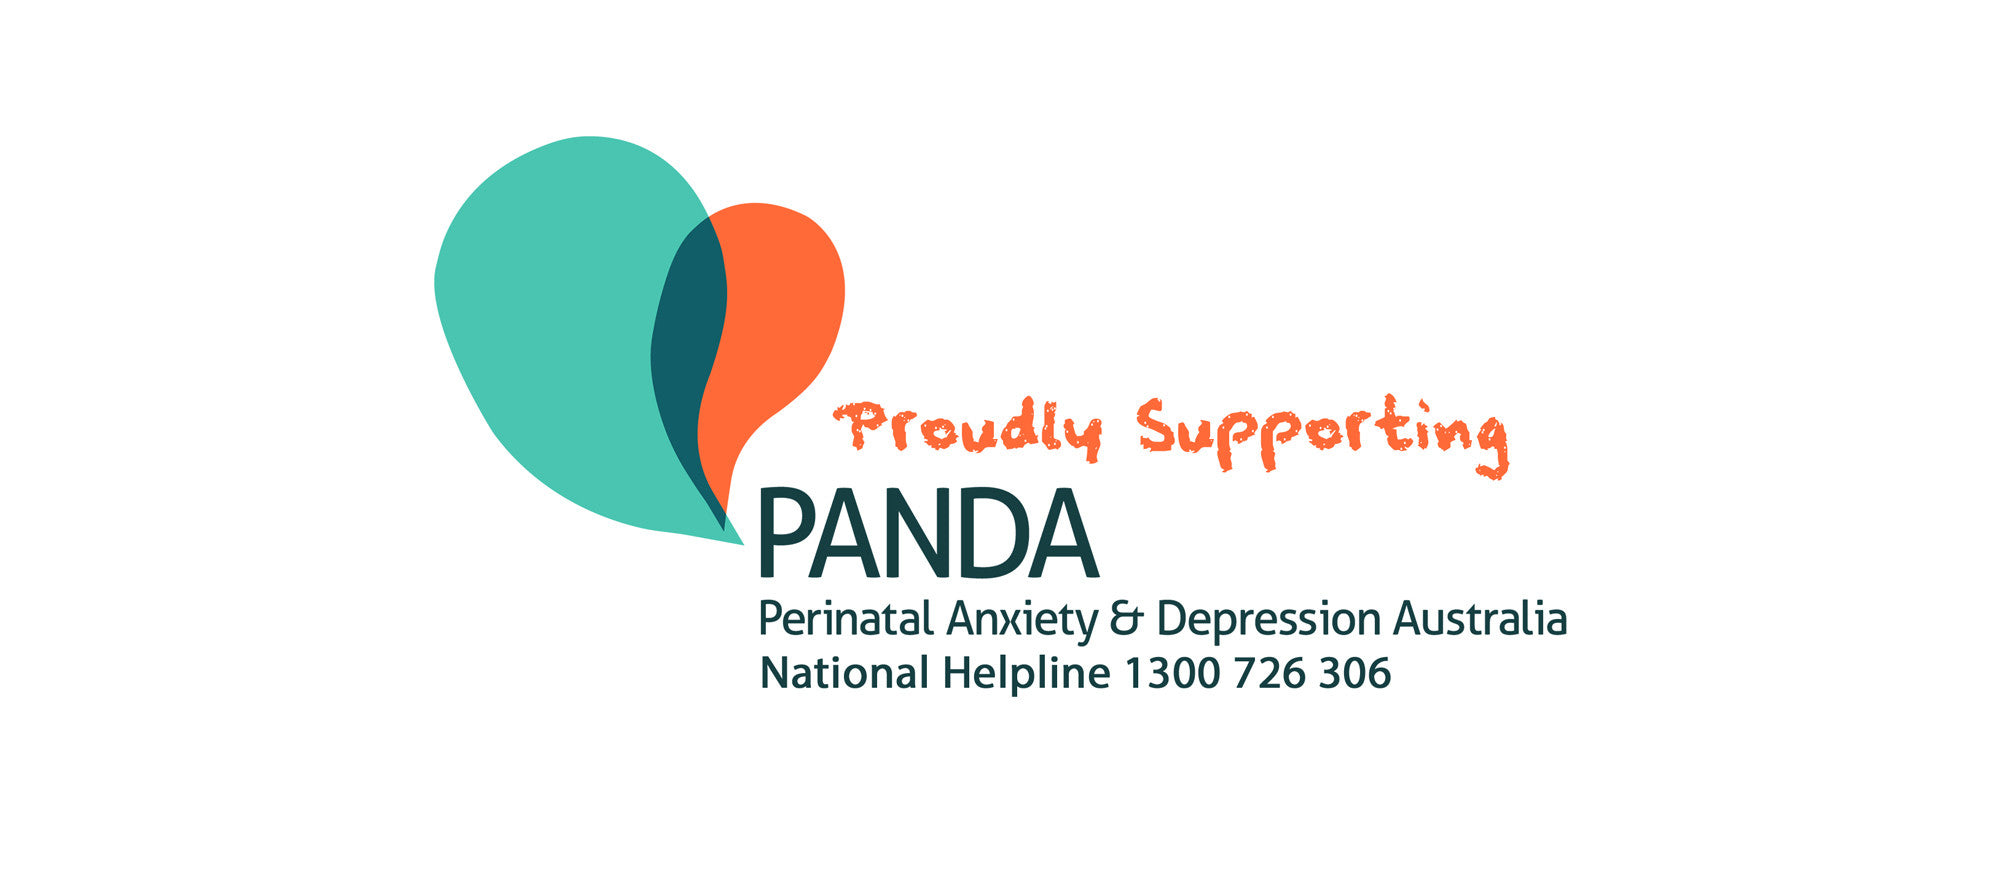 Proudly Supporting PANDA